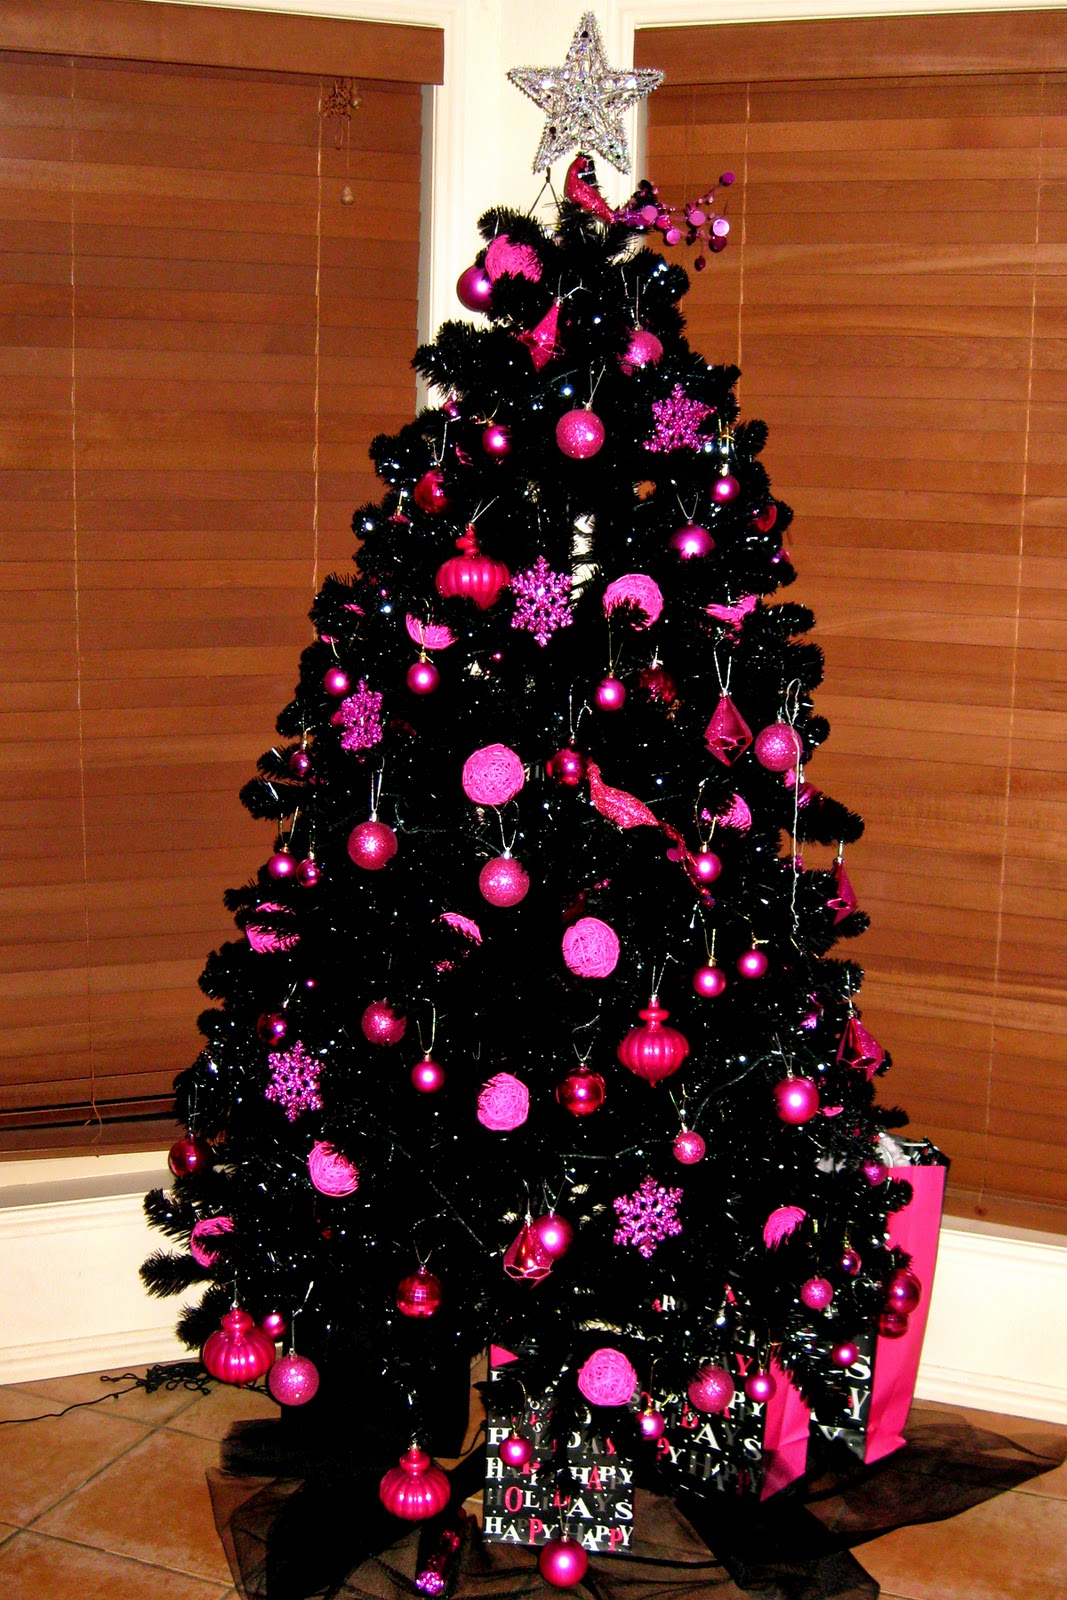 Black Christmas tree decorated in hot pink ornaments.